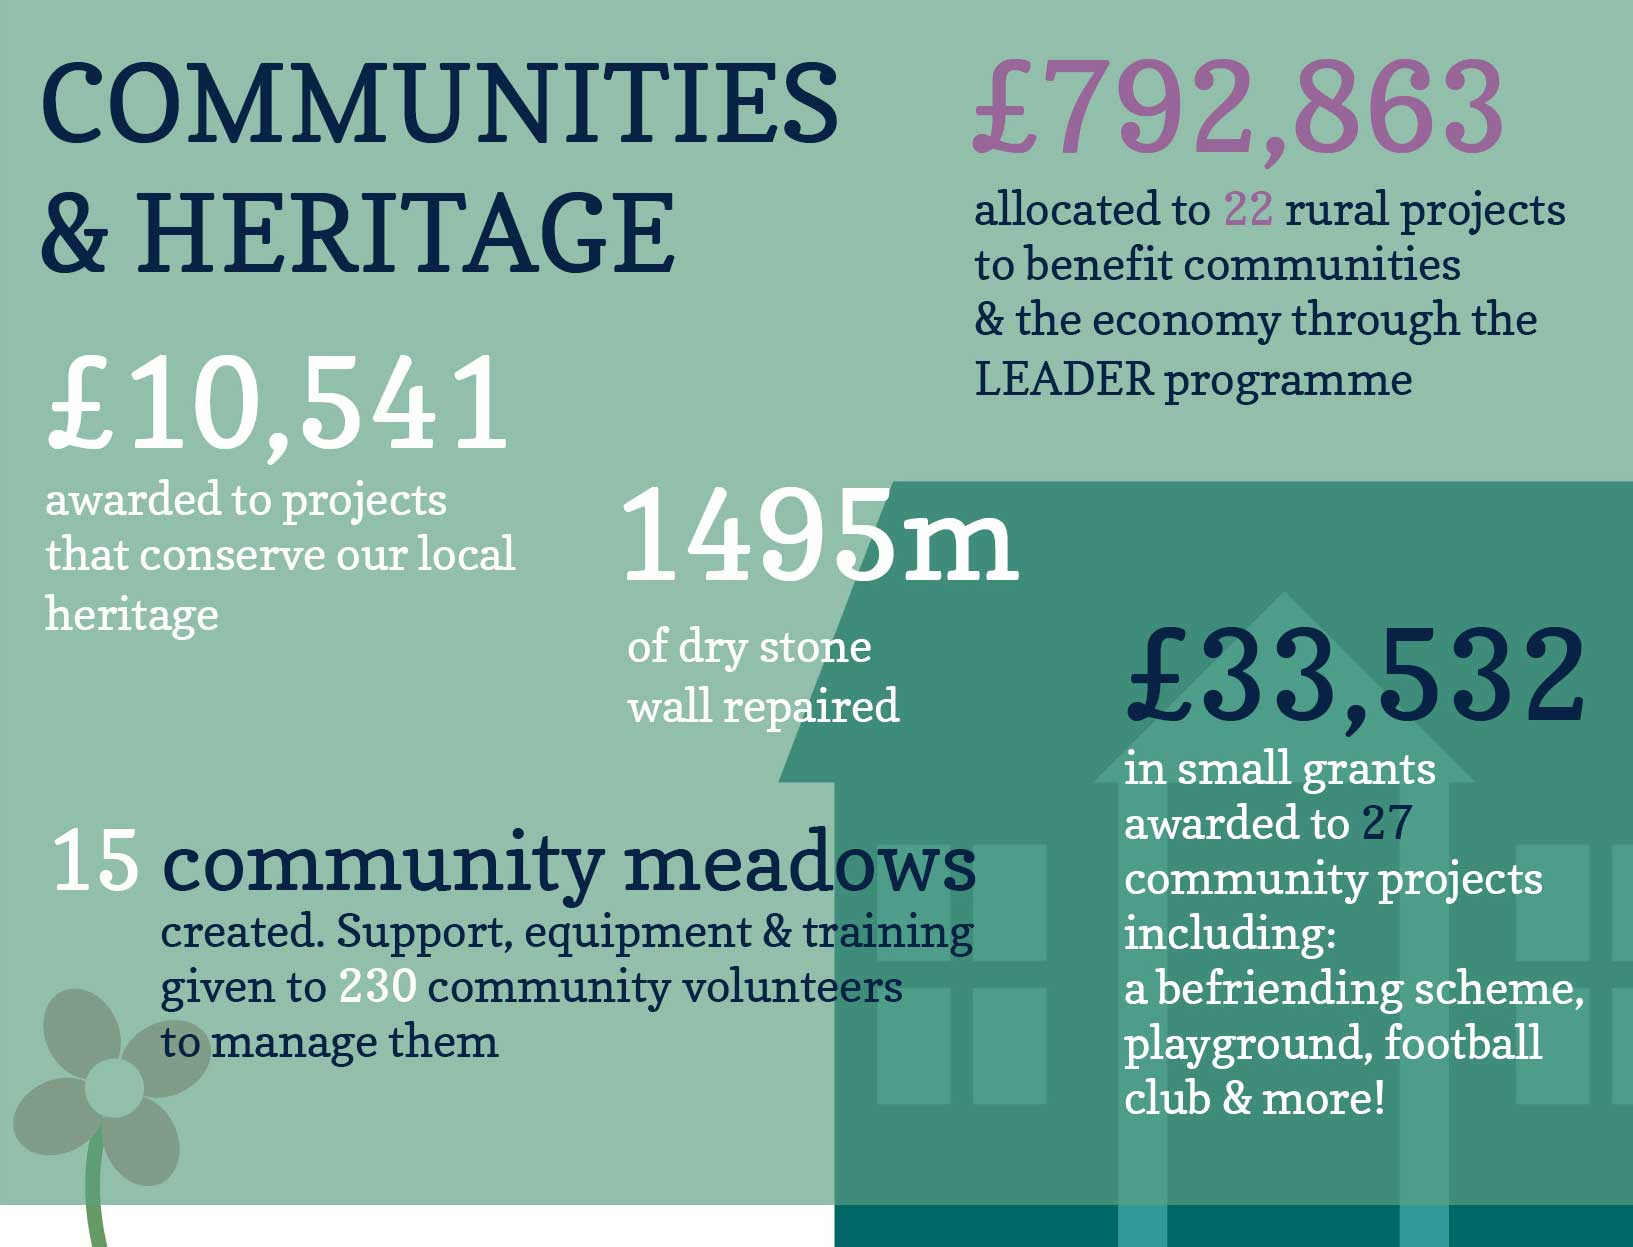 Impact of our work on rural communities